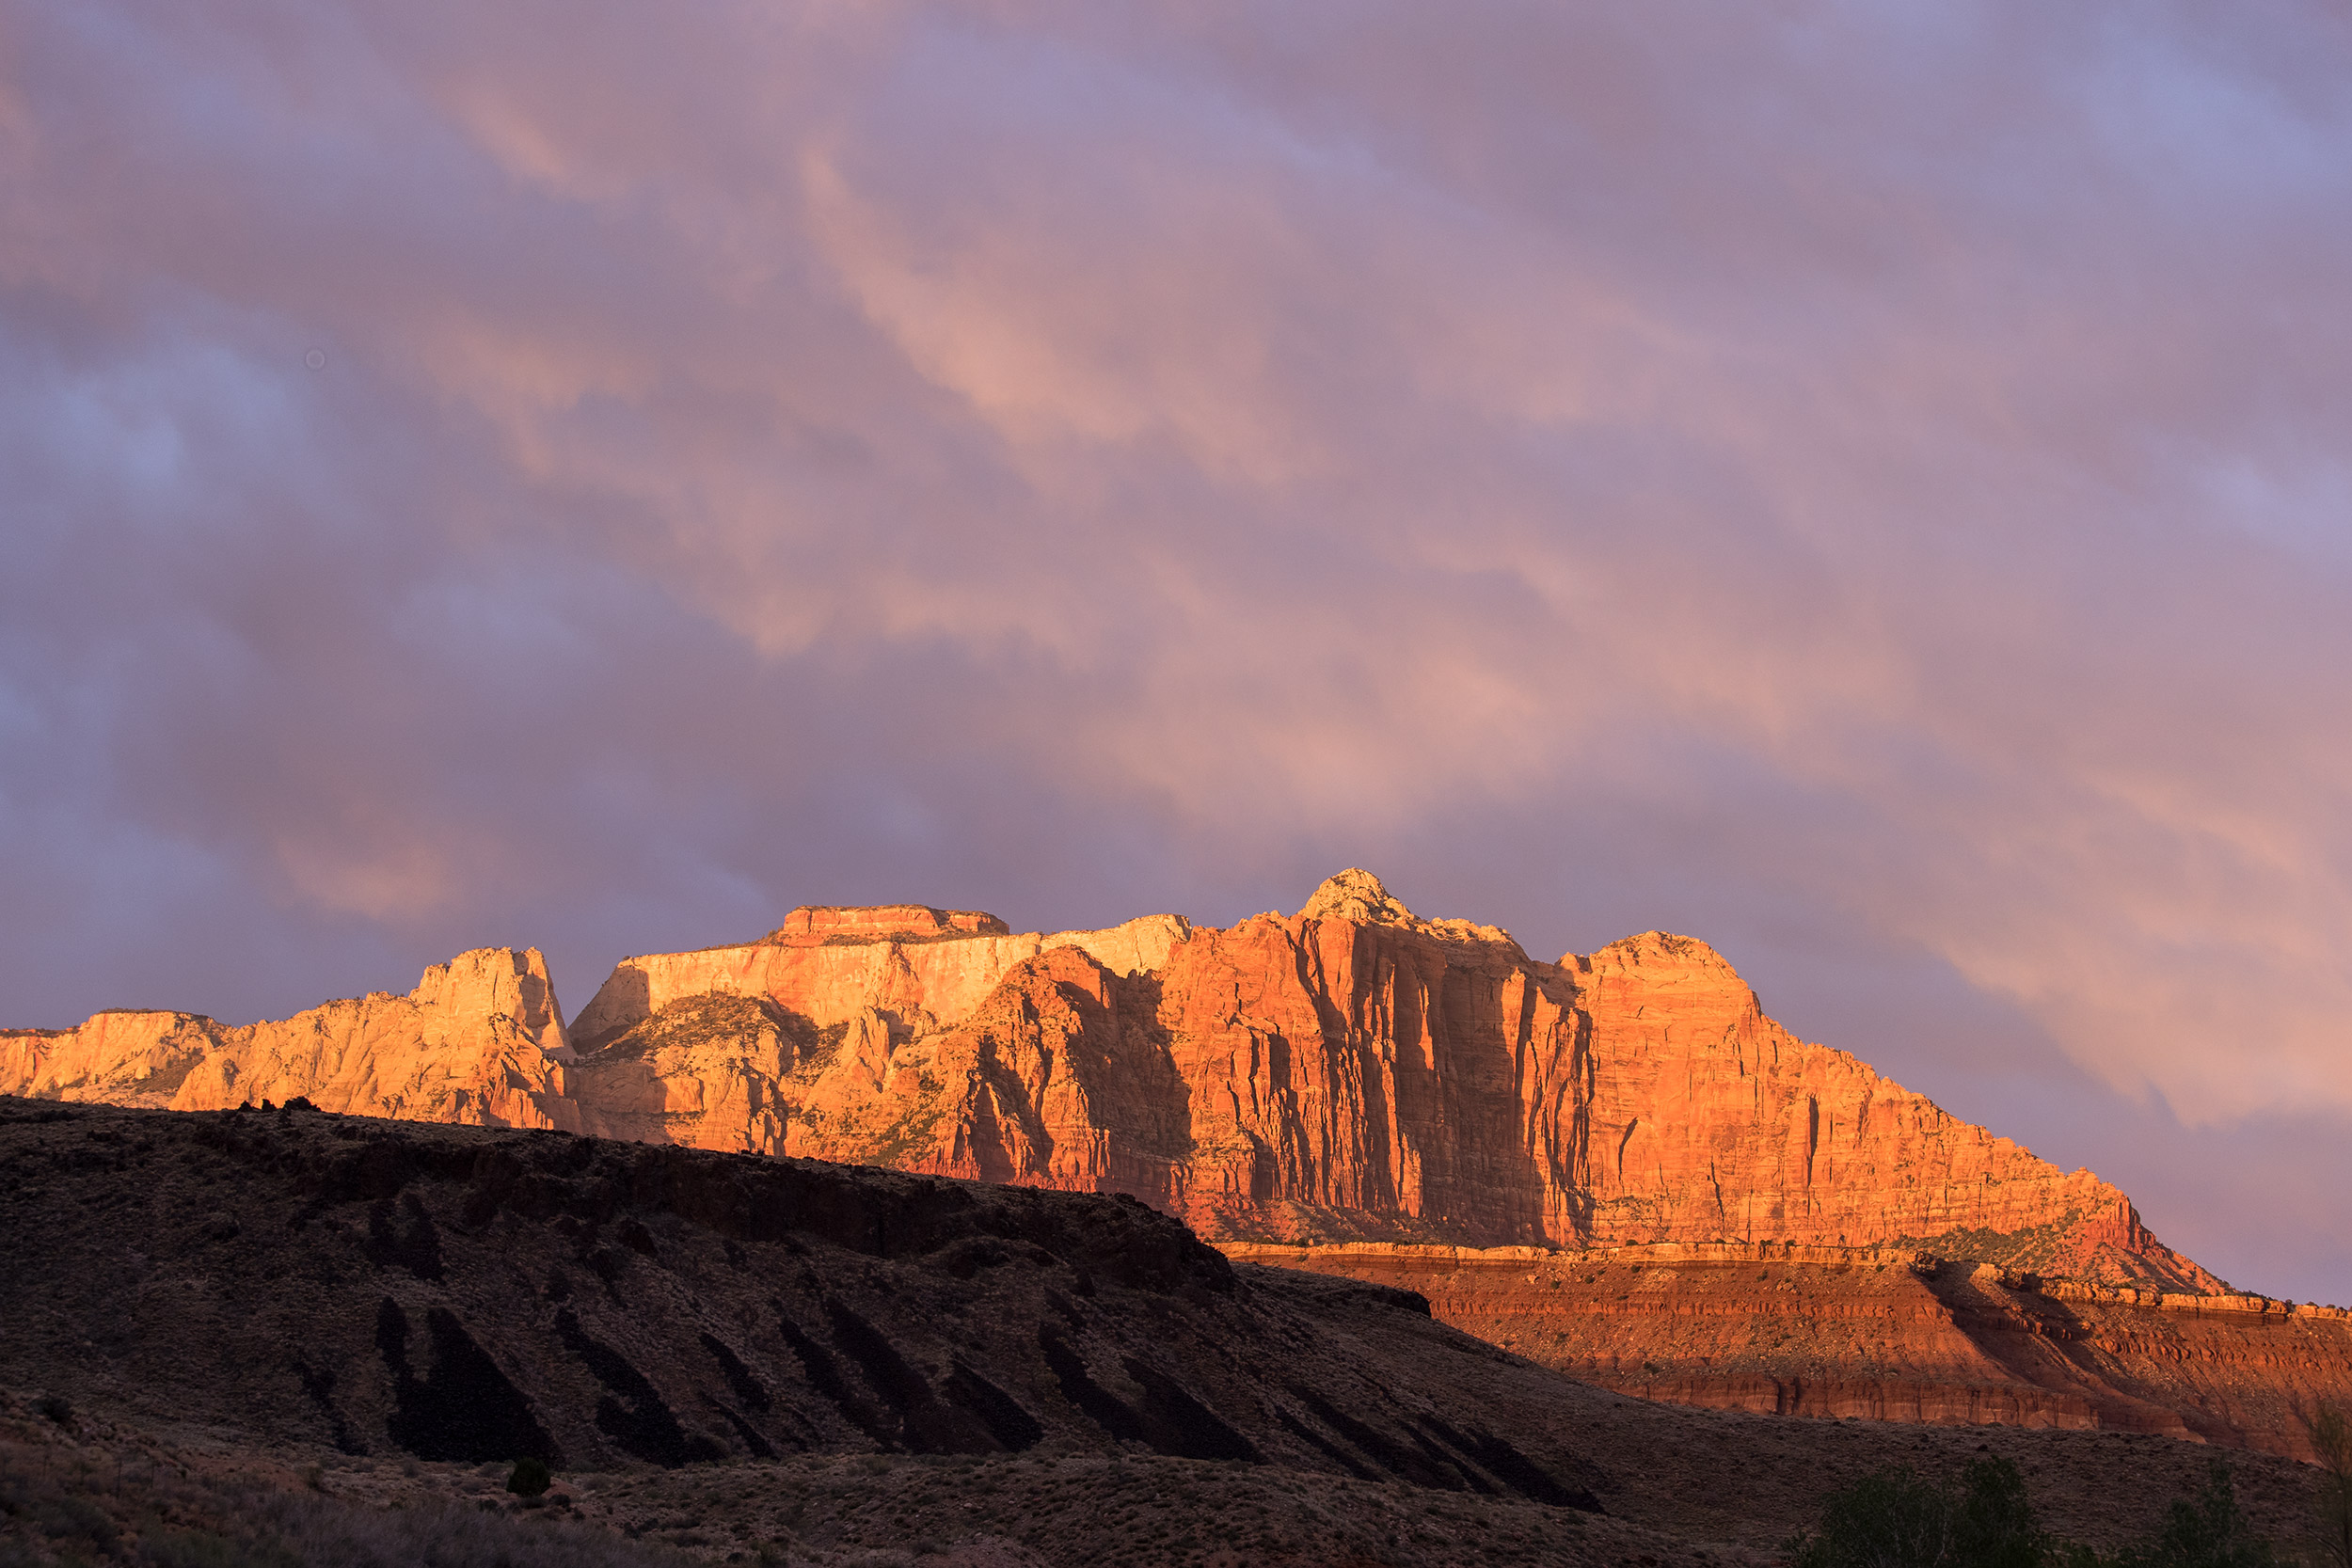 NATLPARKING_travel_rv_adventure_sunset_zionnationalpark_1251_WB